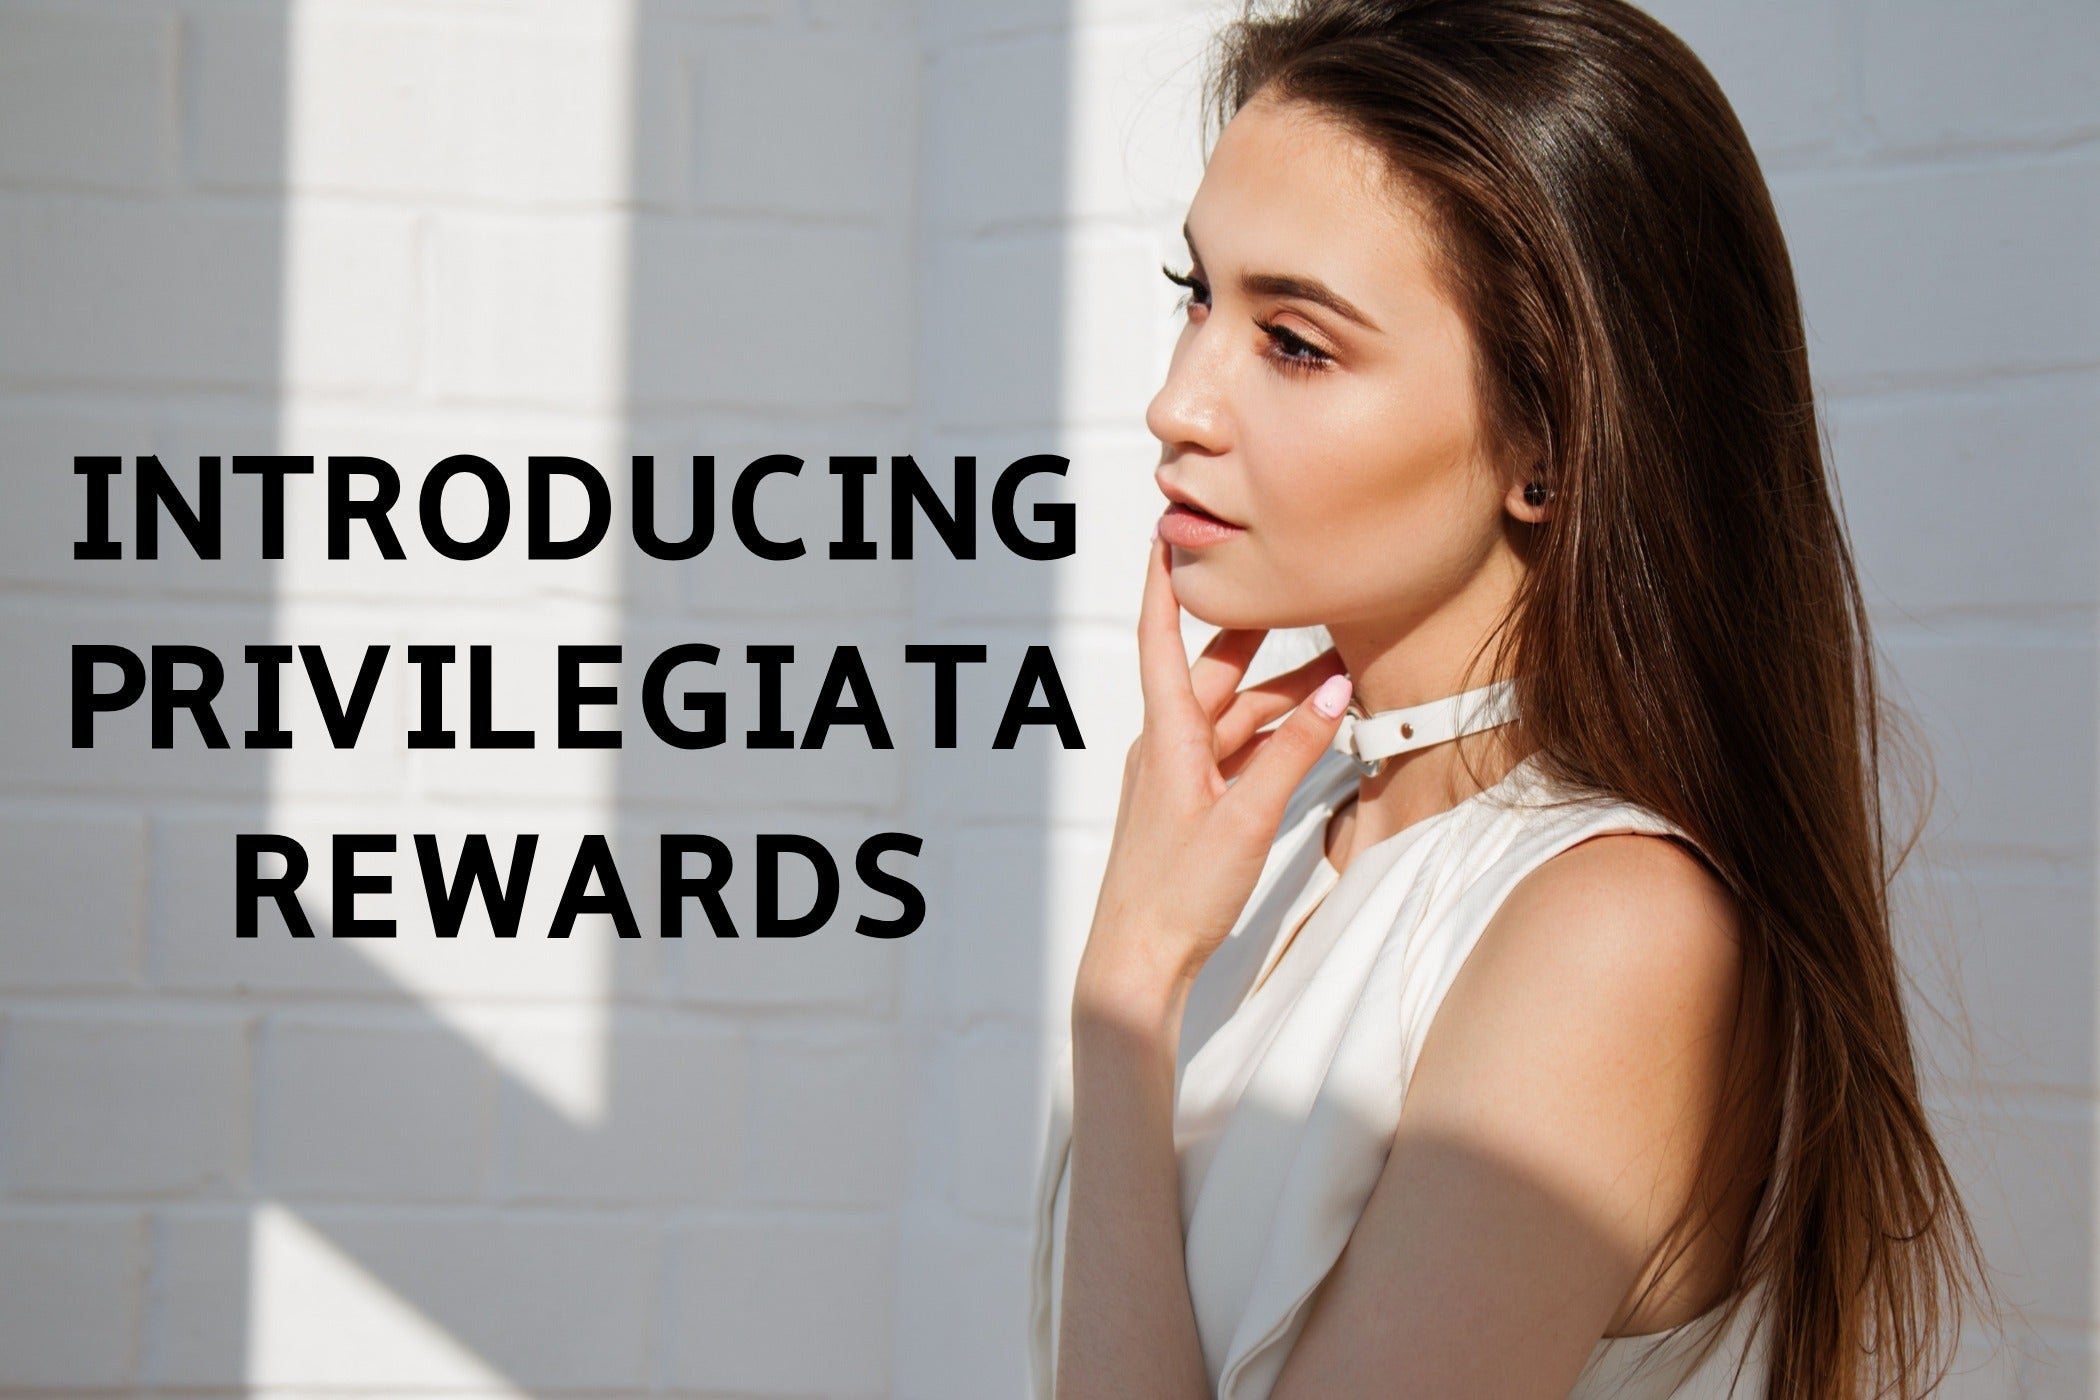 NOTTEVERA Privilegiata rewards loyalty program